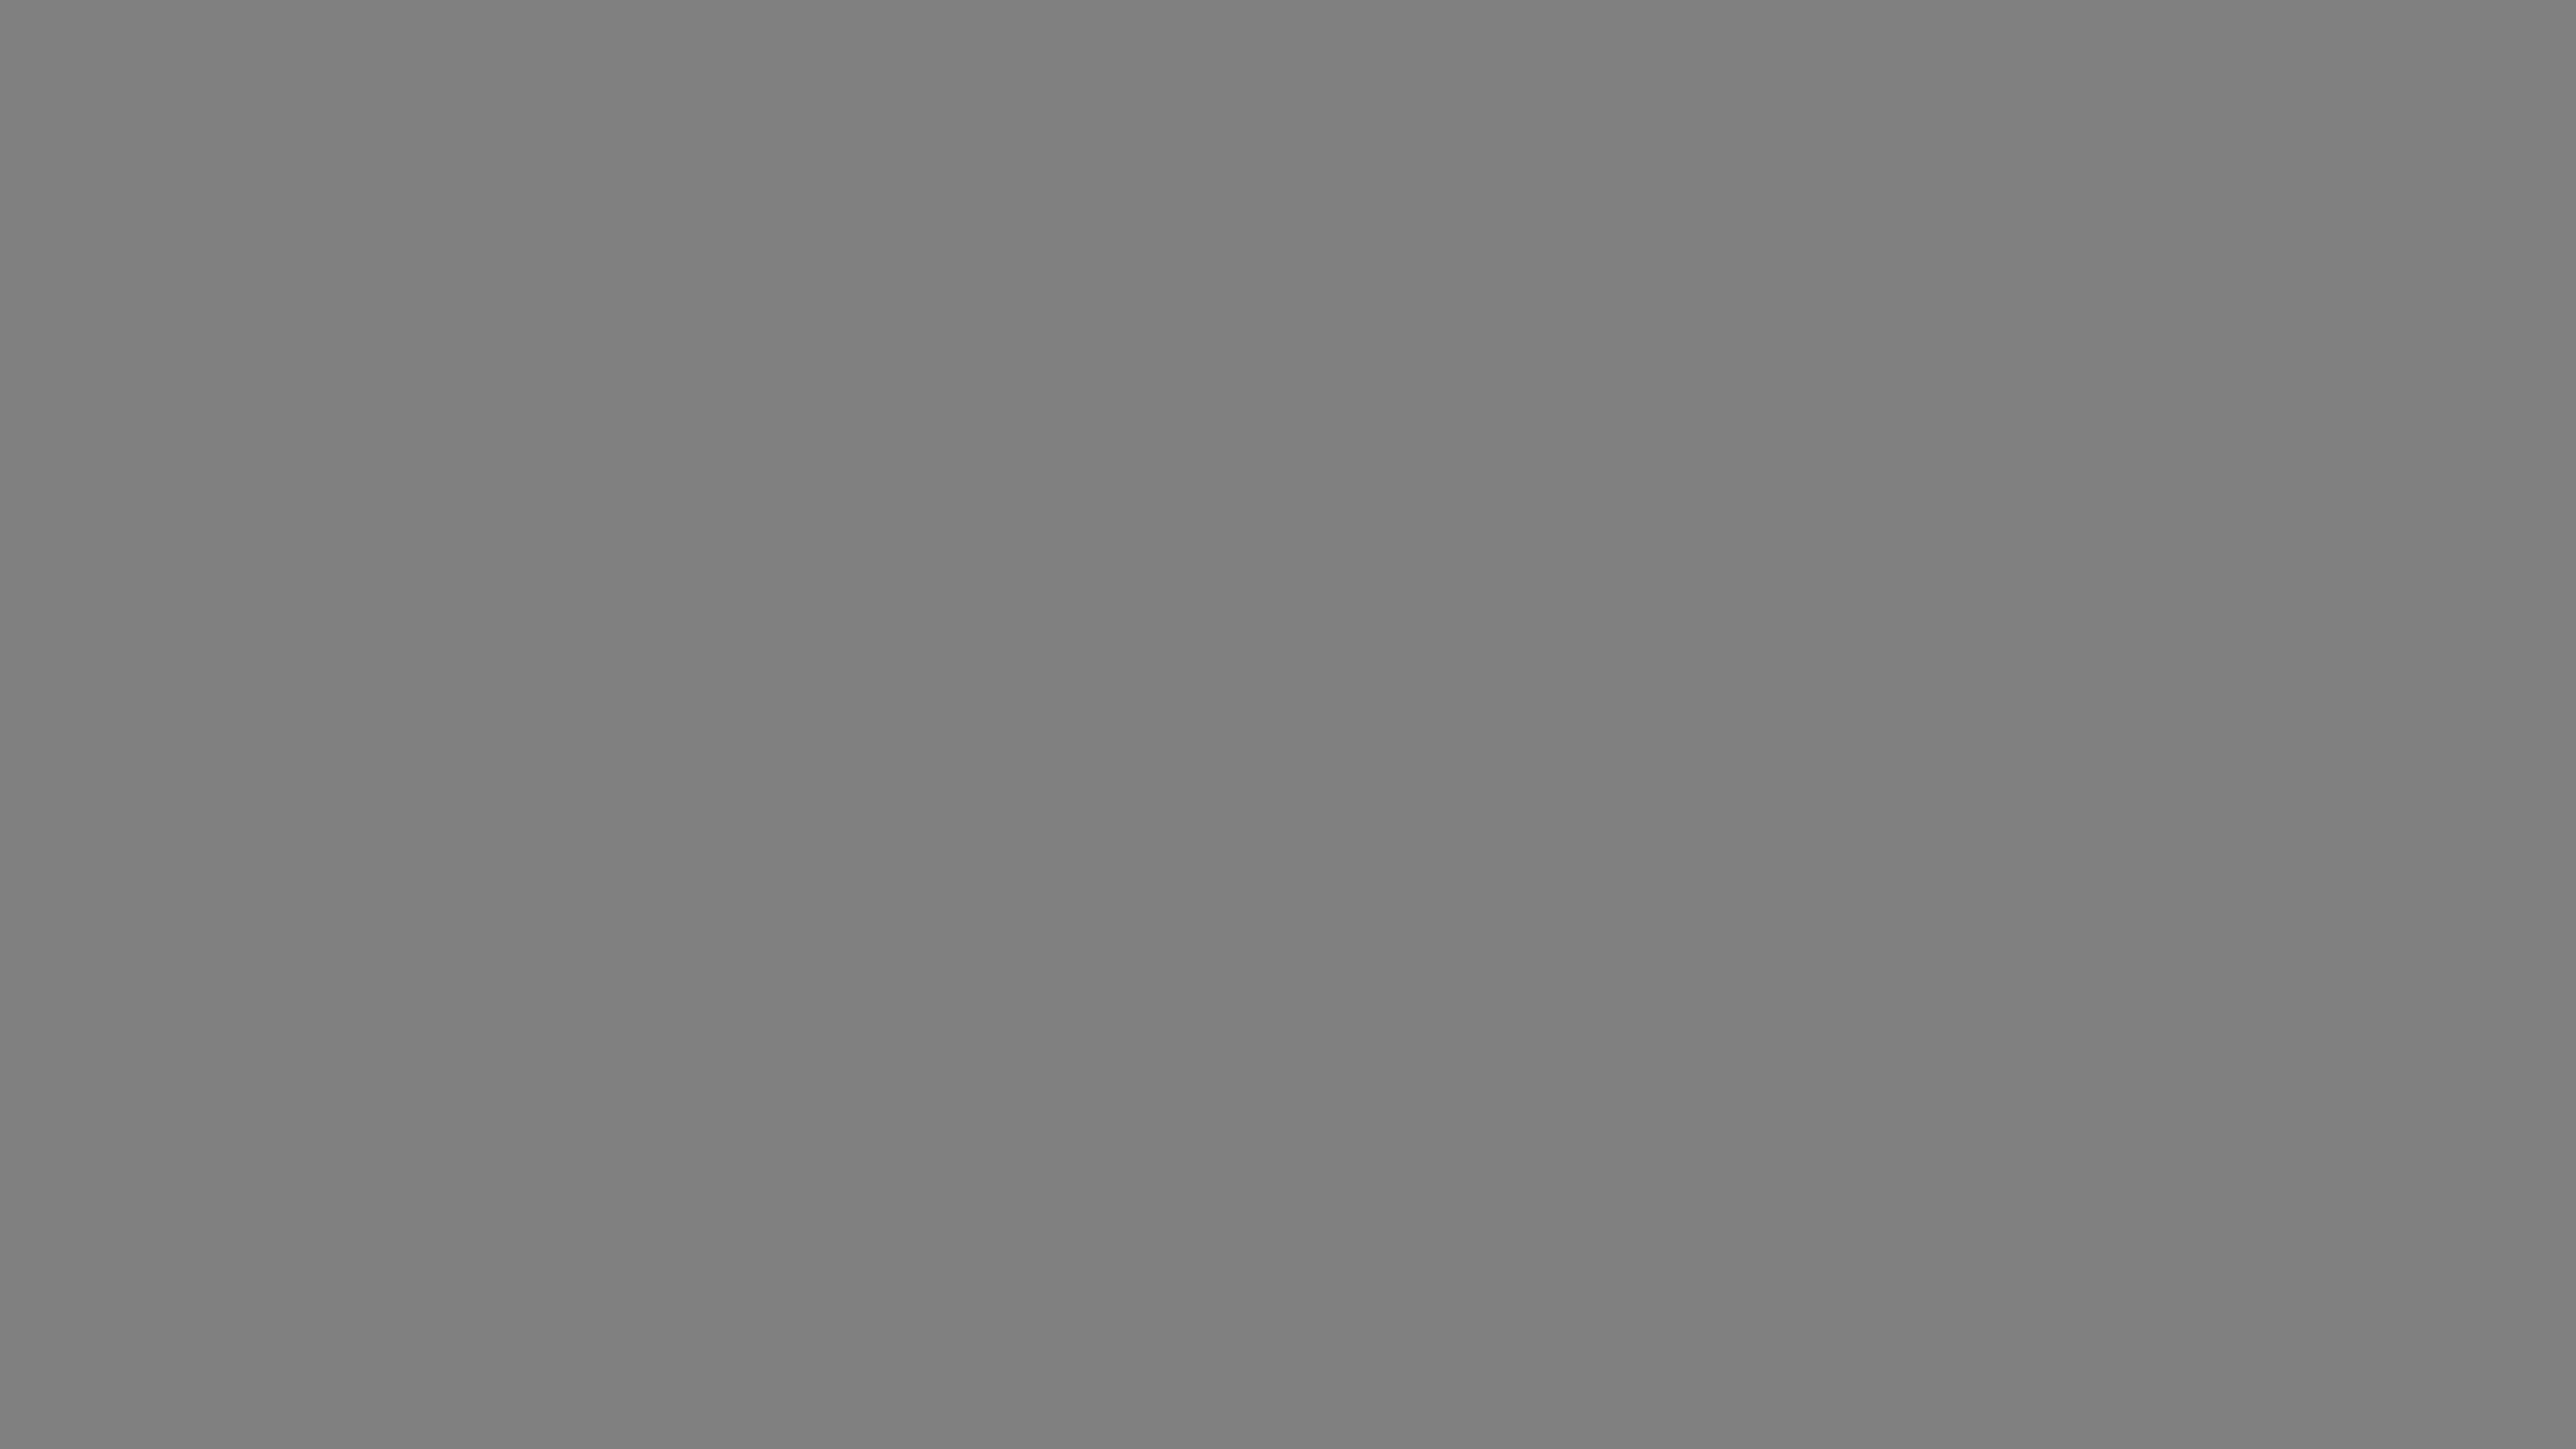 3840x2160 Trolley Grey Solid Color Background